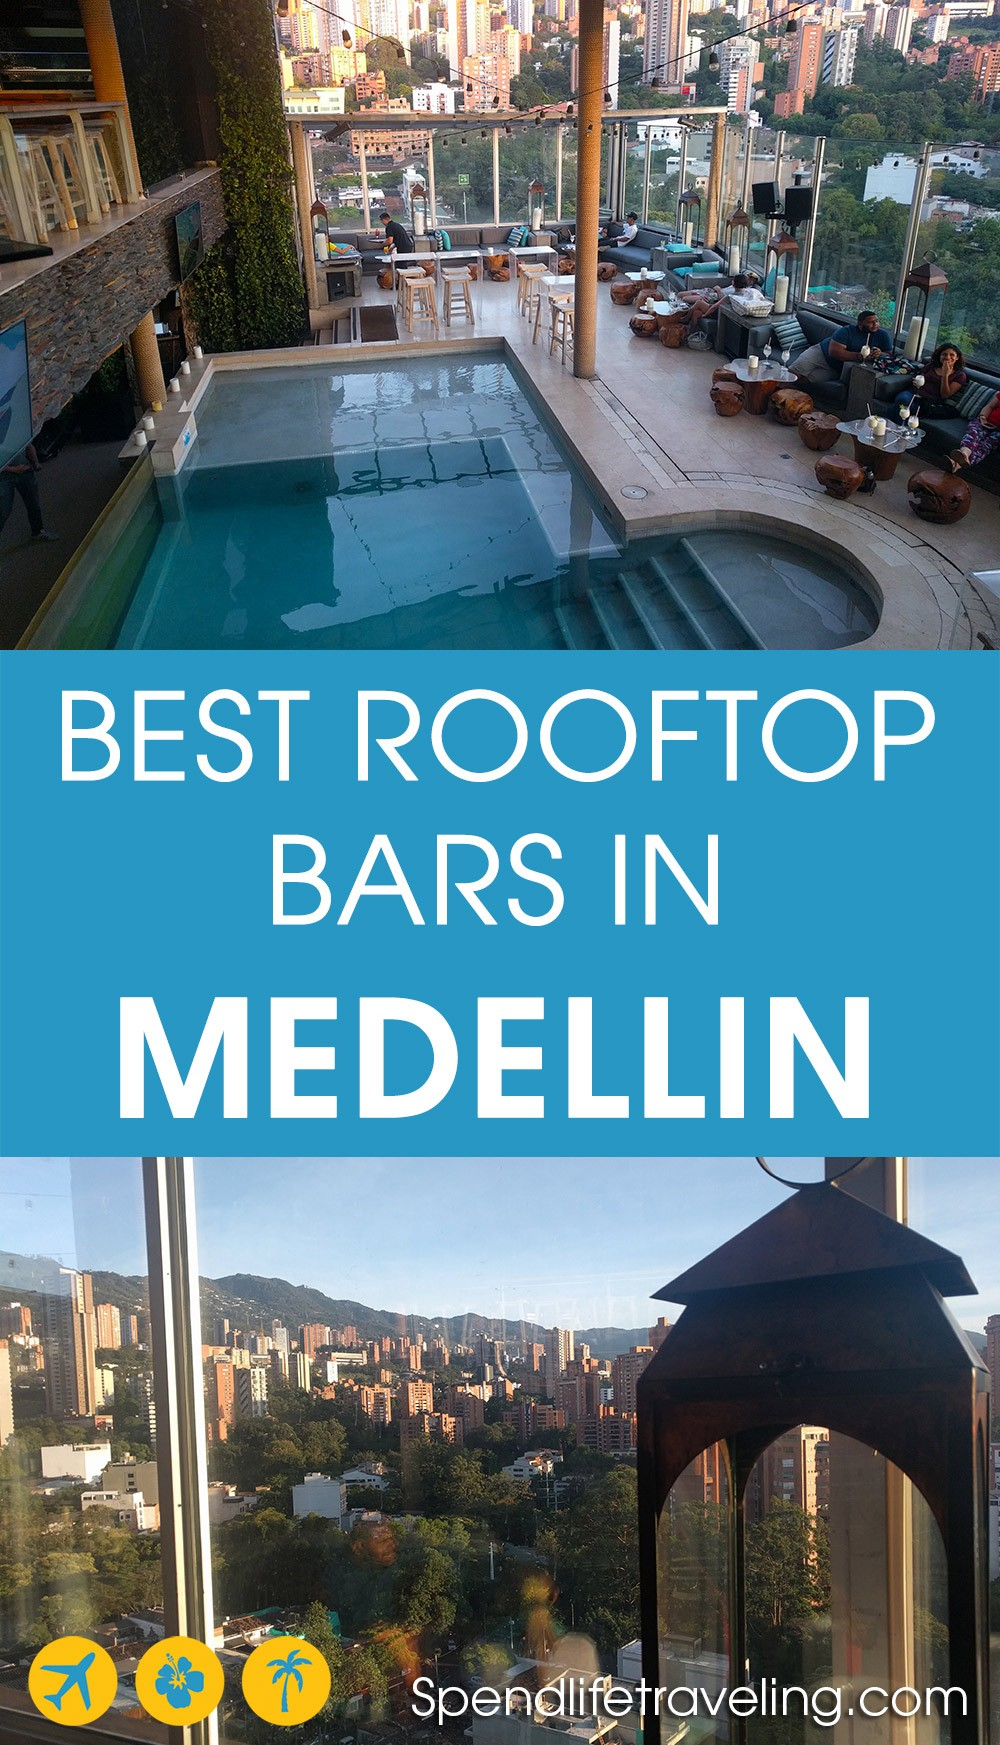 List of the best rooftop bars in Medellin, Colombia. Medellin, nicknamed City of Eternal Spring, is a perfect place to check out some great rooftop bars. From small, casual bars to trendy, upmarket venues. #Medellin #rooftopbar #Colombia #travelColombia